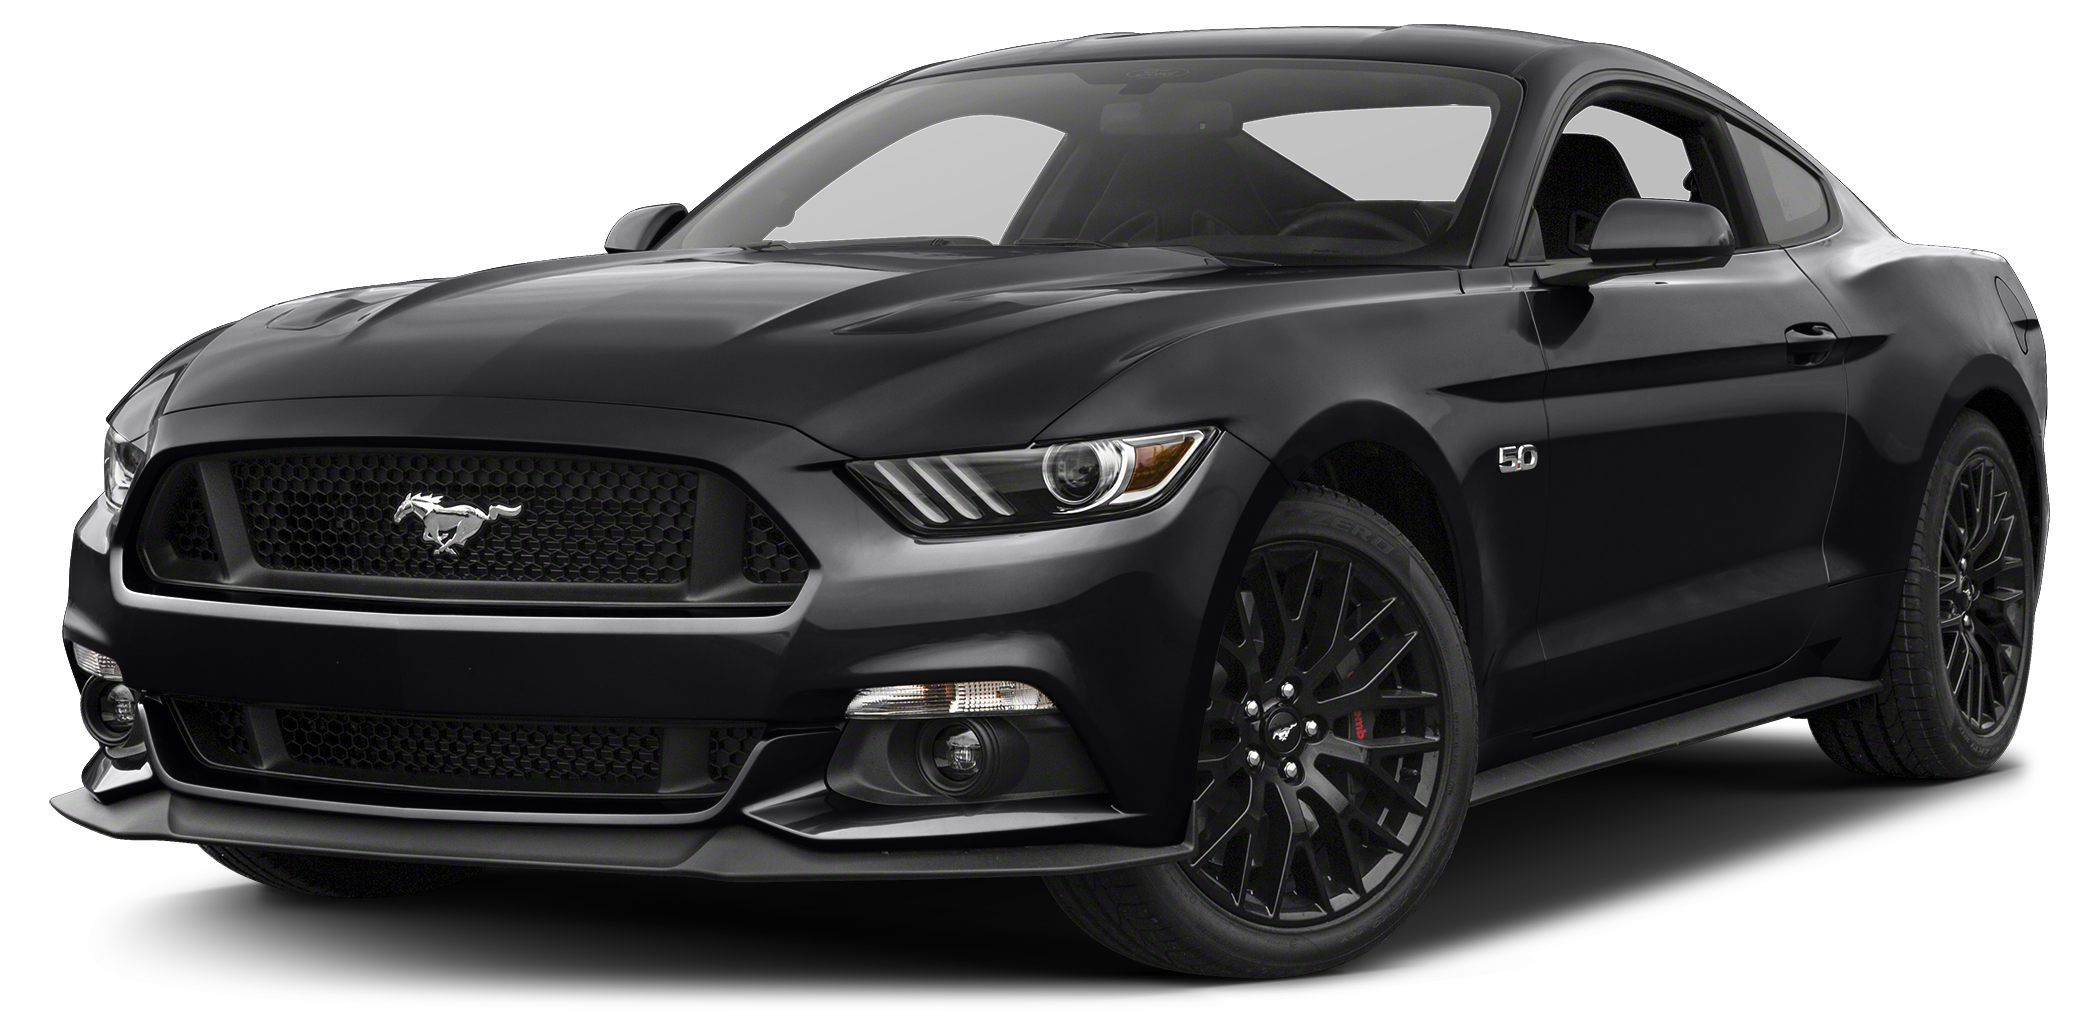 2017 Ford Mustang Gt Premium 44270 Cars